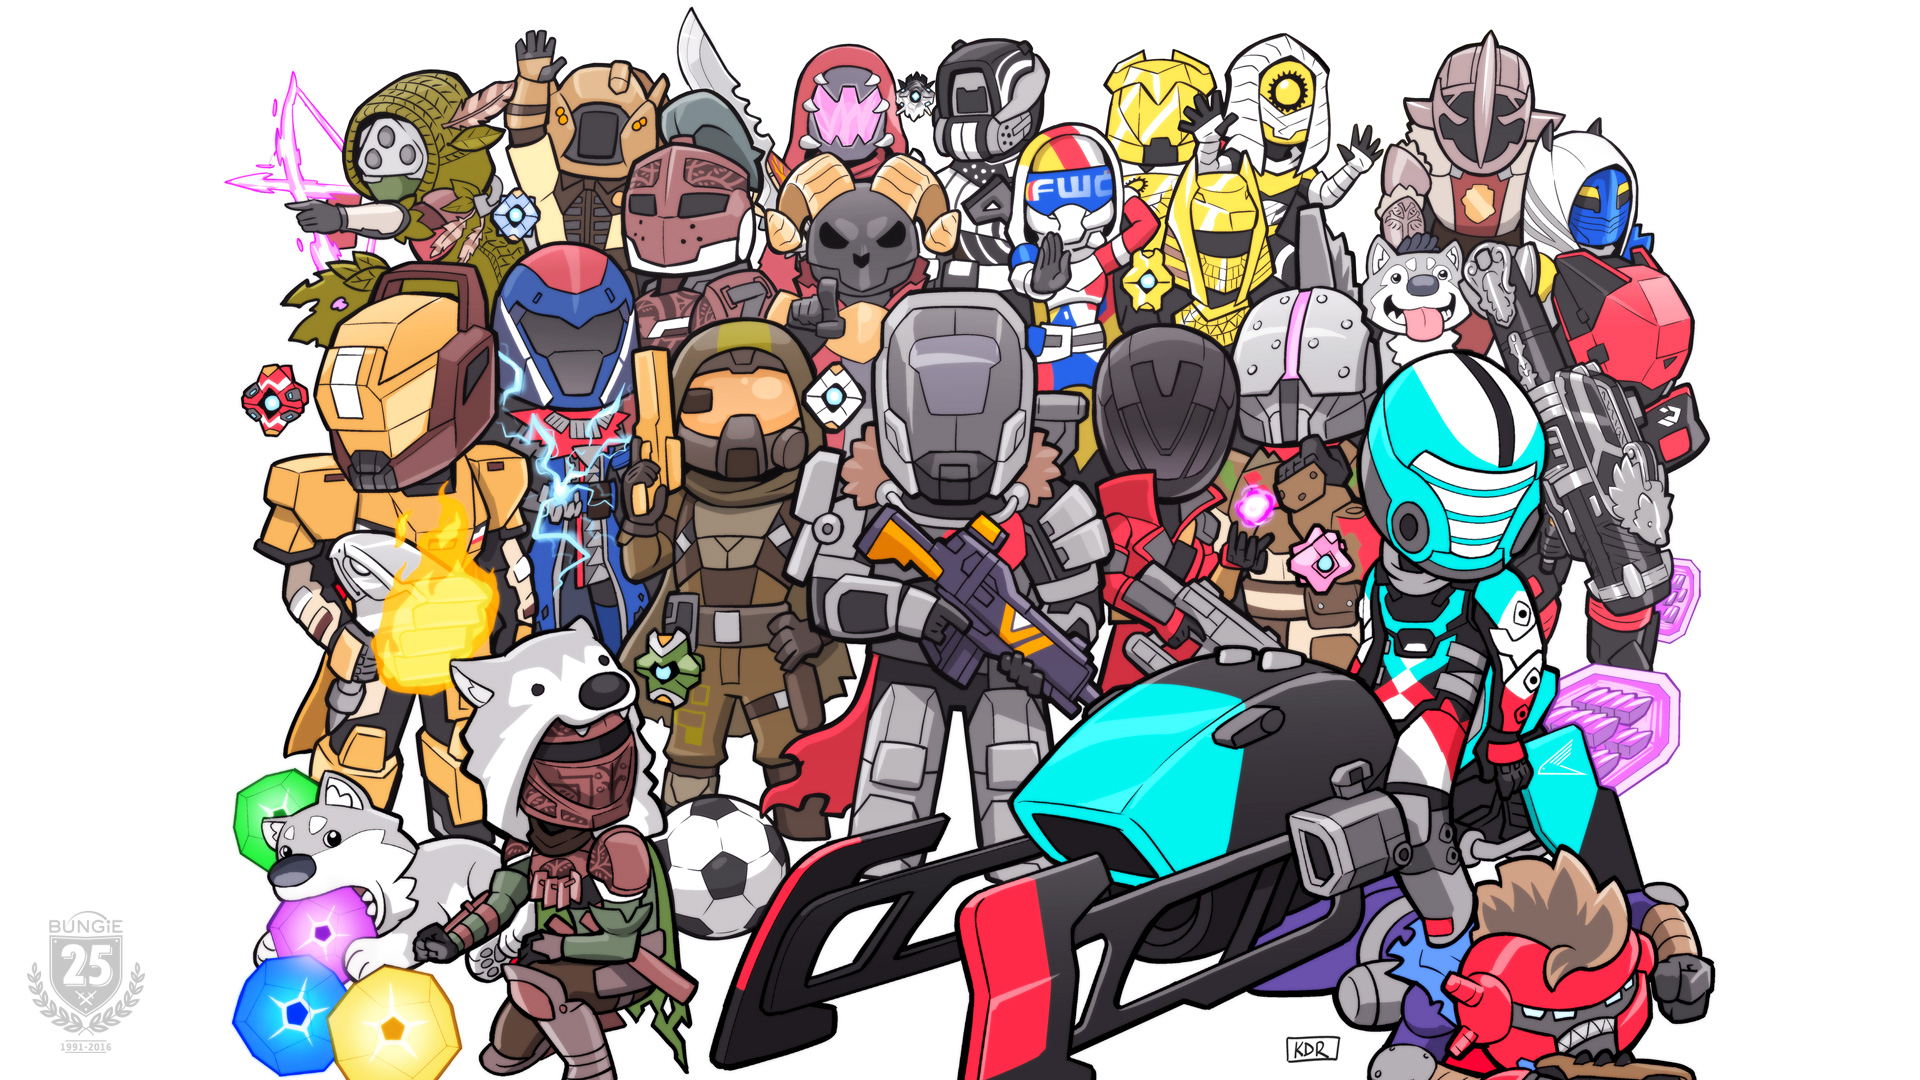 Destiny clipart 1920x1080 picture freeuse Year Two Triumphs - Destiny Wiki Guide - IGN picture freeuse